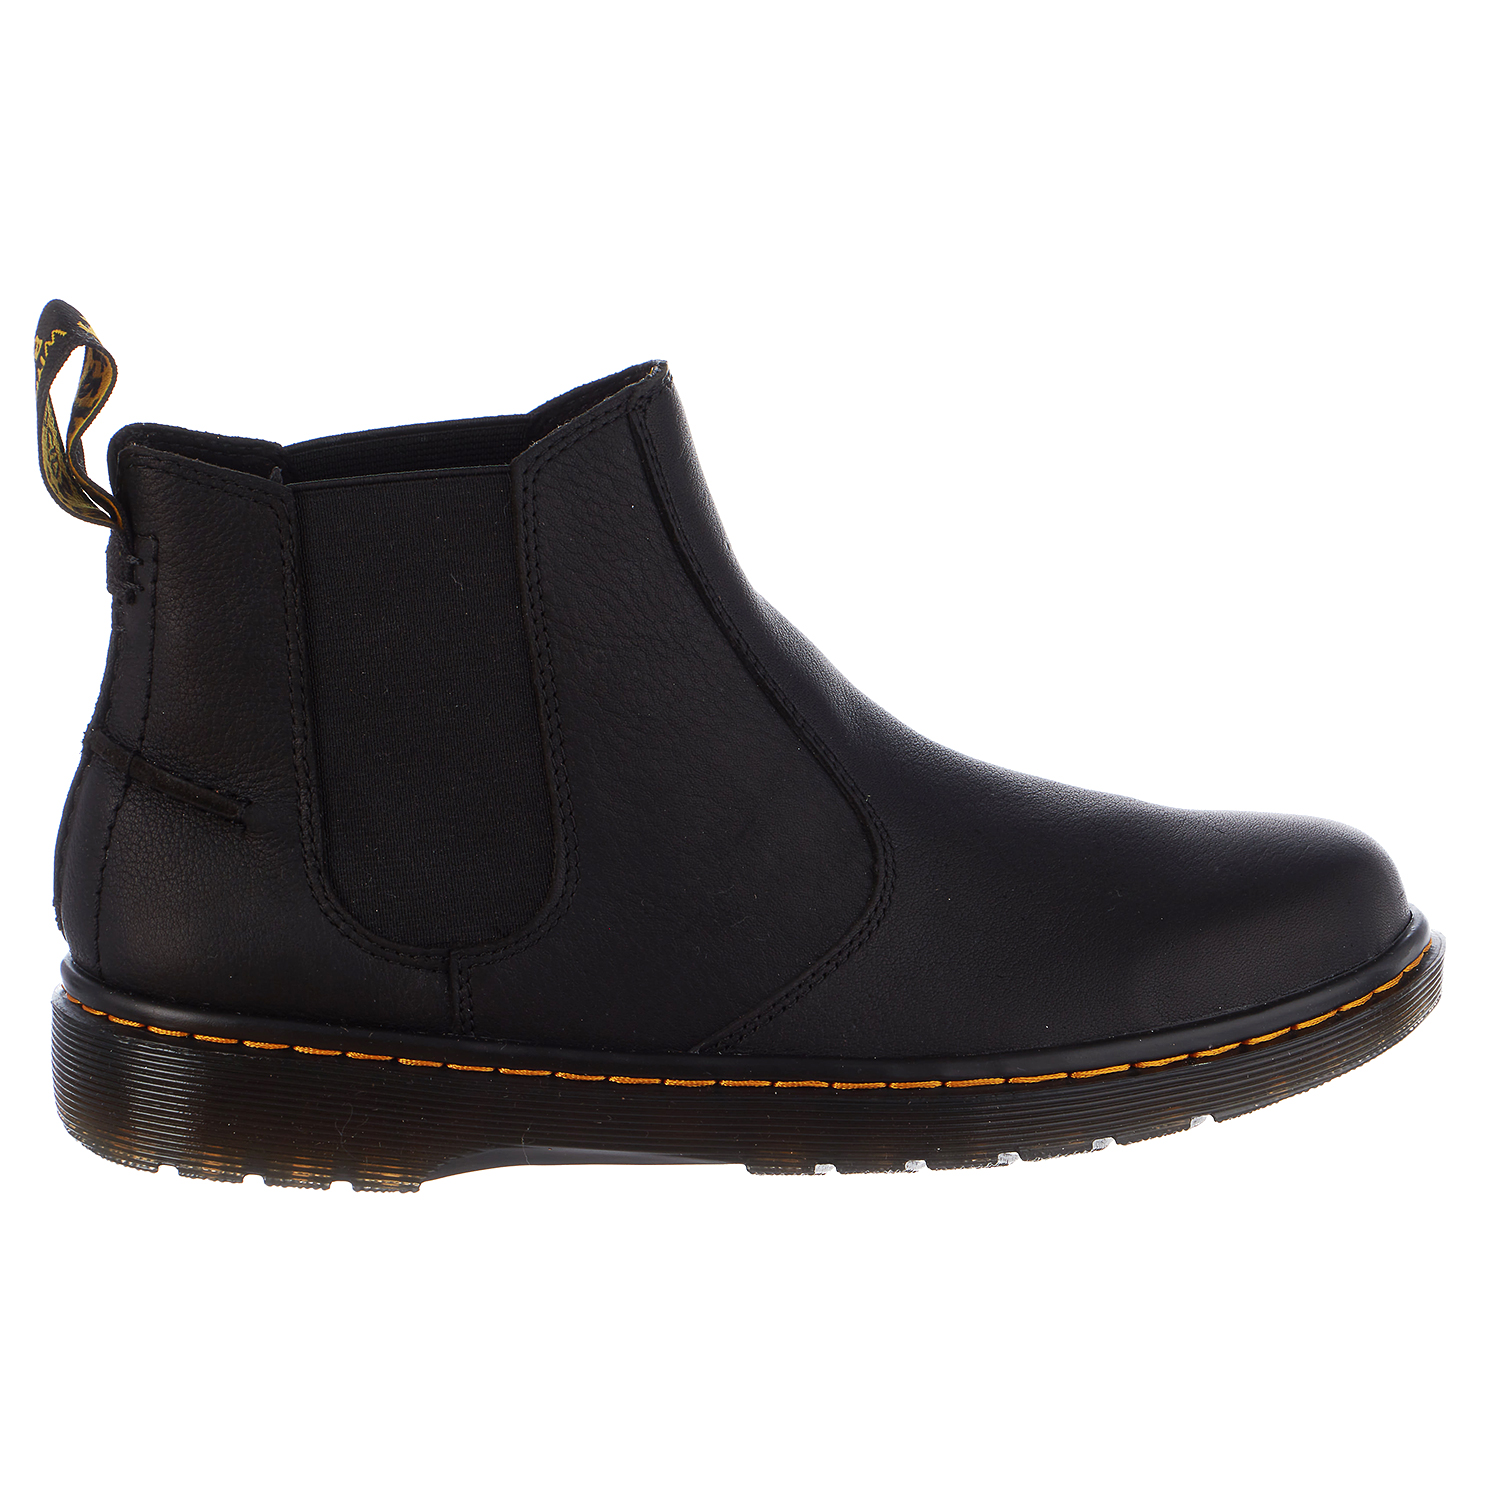 Dr. Martens Lyme Chelsea Boot Casual Pull On Shoe Mens by Dr. Martens